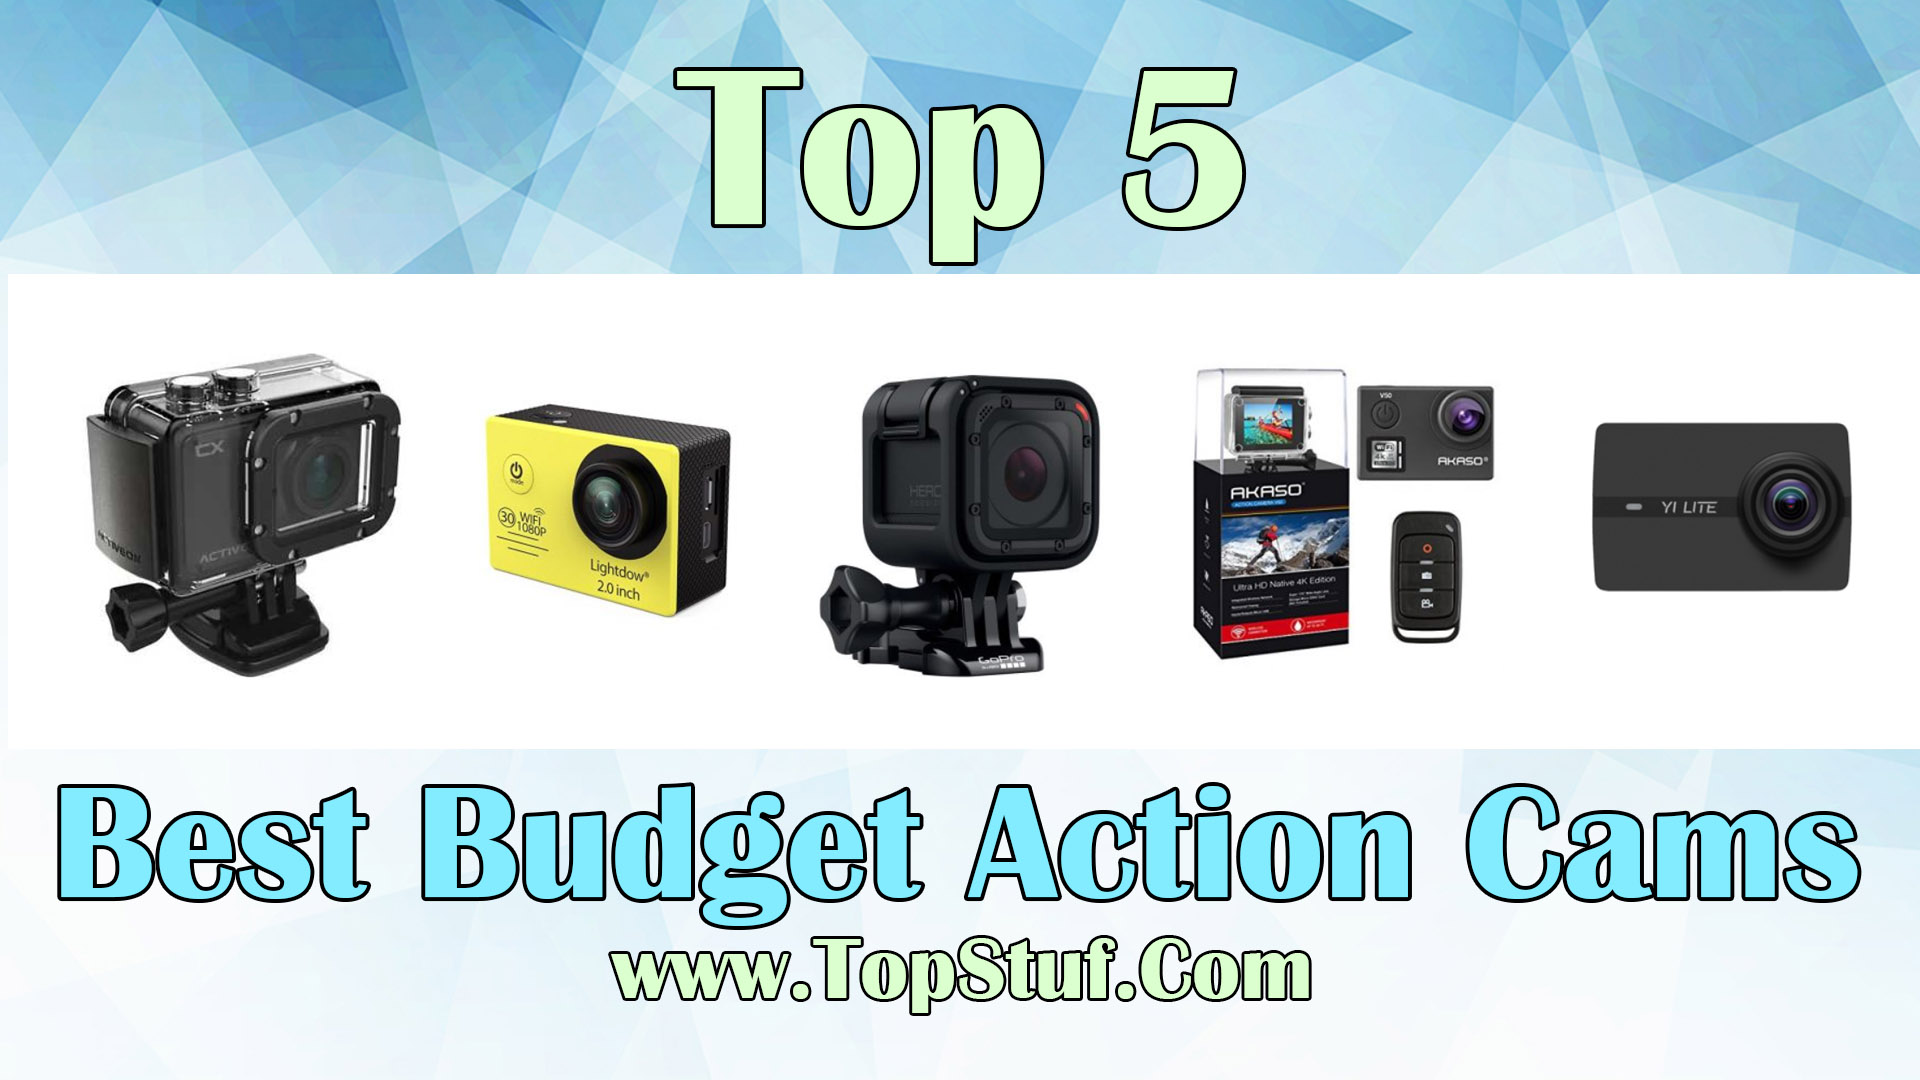 Best Budget Action Cams